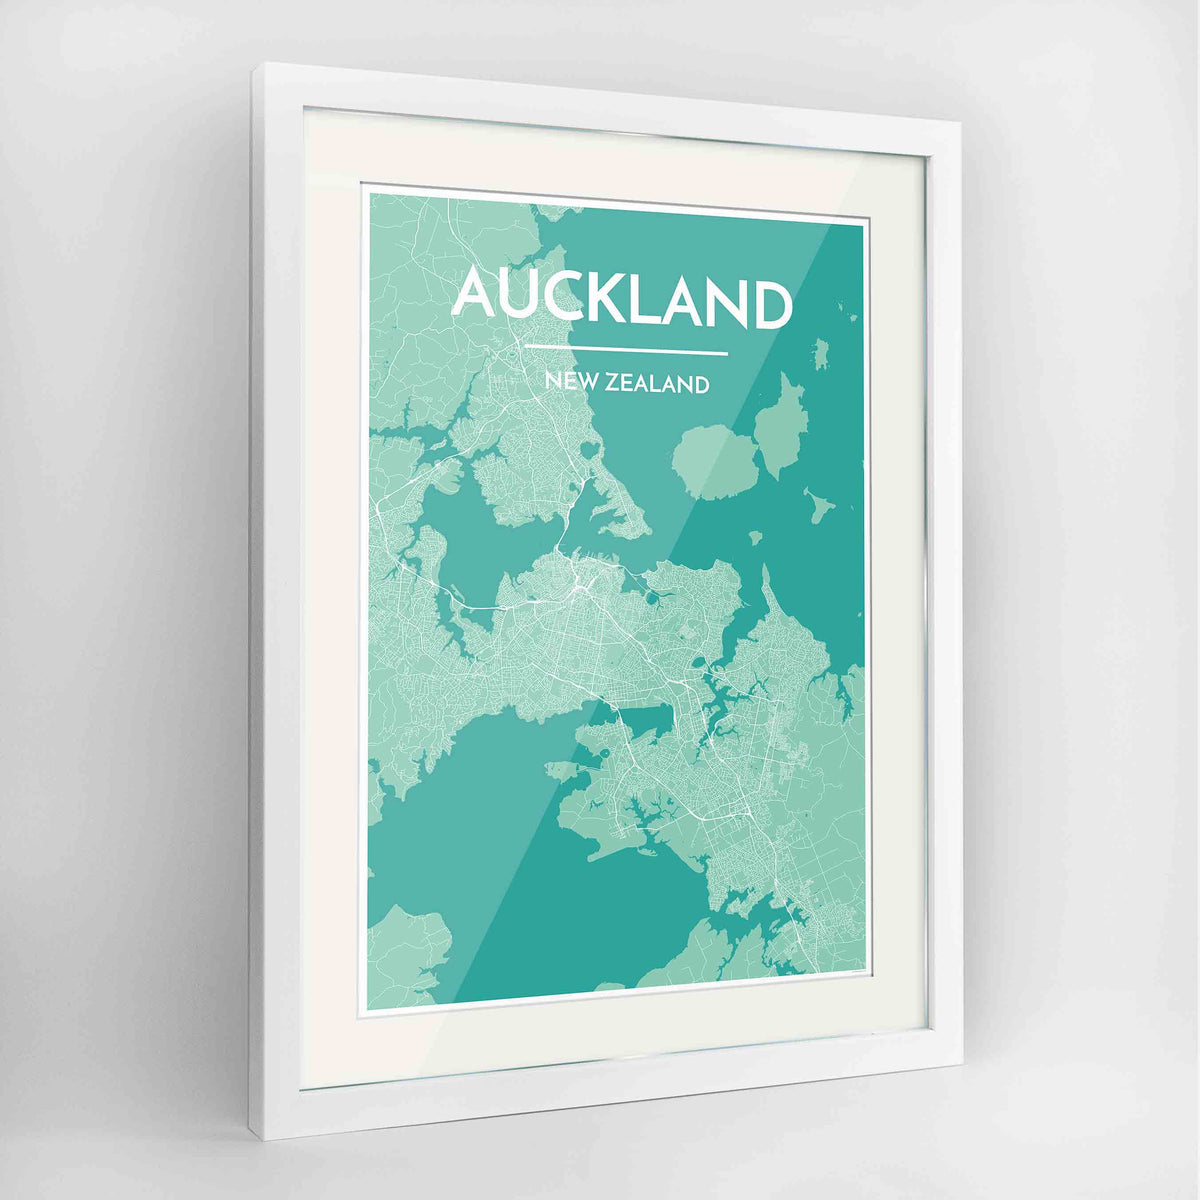 "Framed Auckland Map Art Print 24x36"" Contemporary White frame Point Two Design Group"